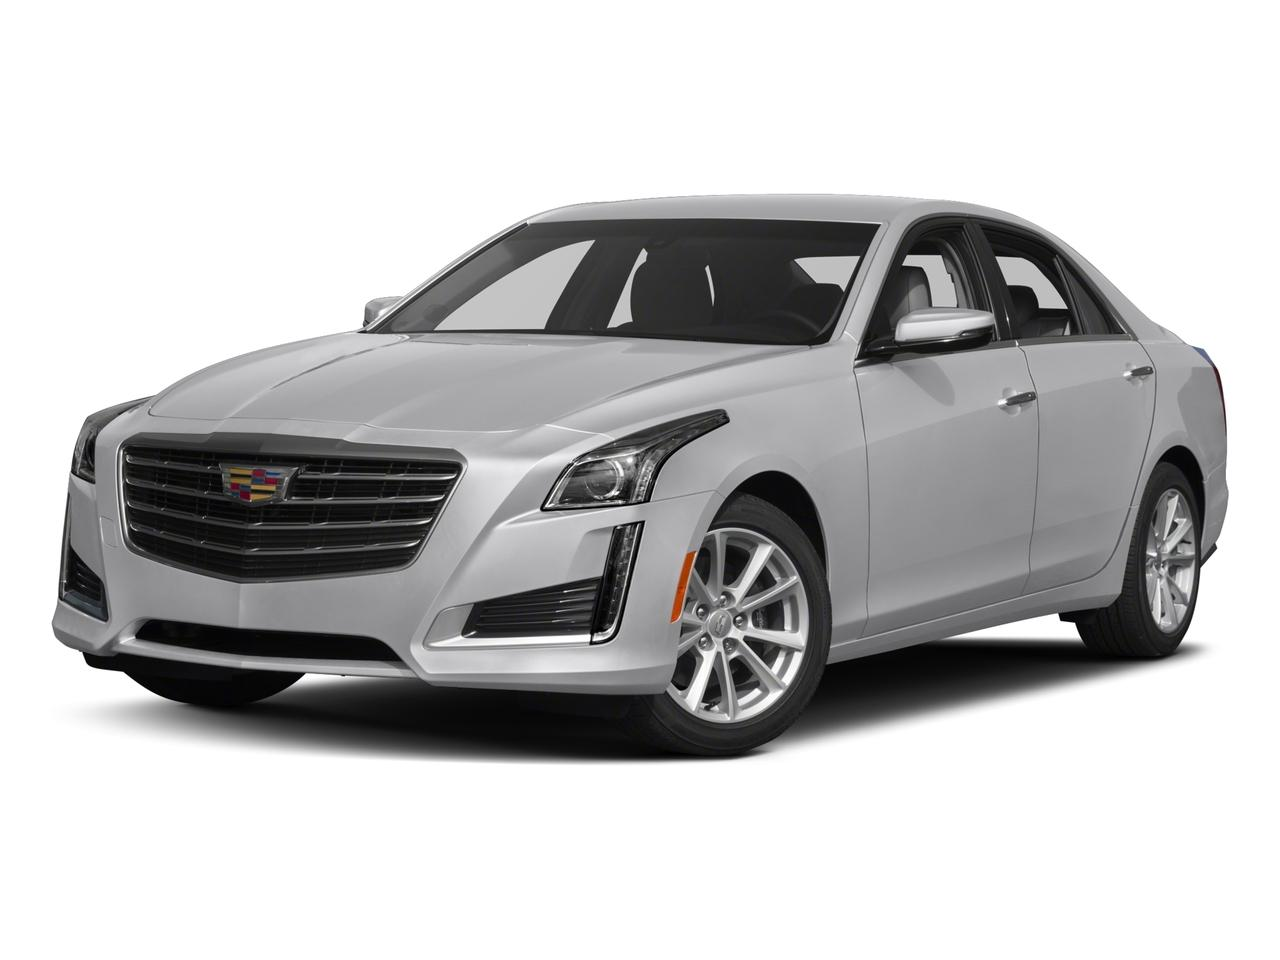 2018 Cadillac CTS Sedan Vehicle Photo in Nashua, NH 03060